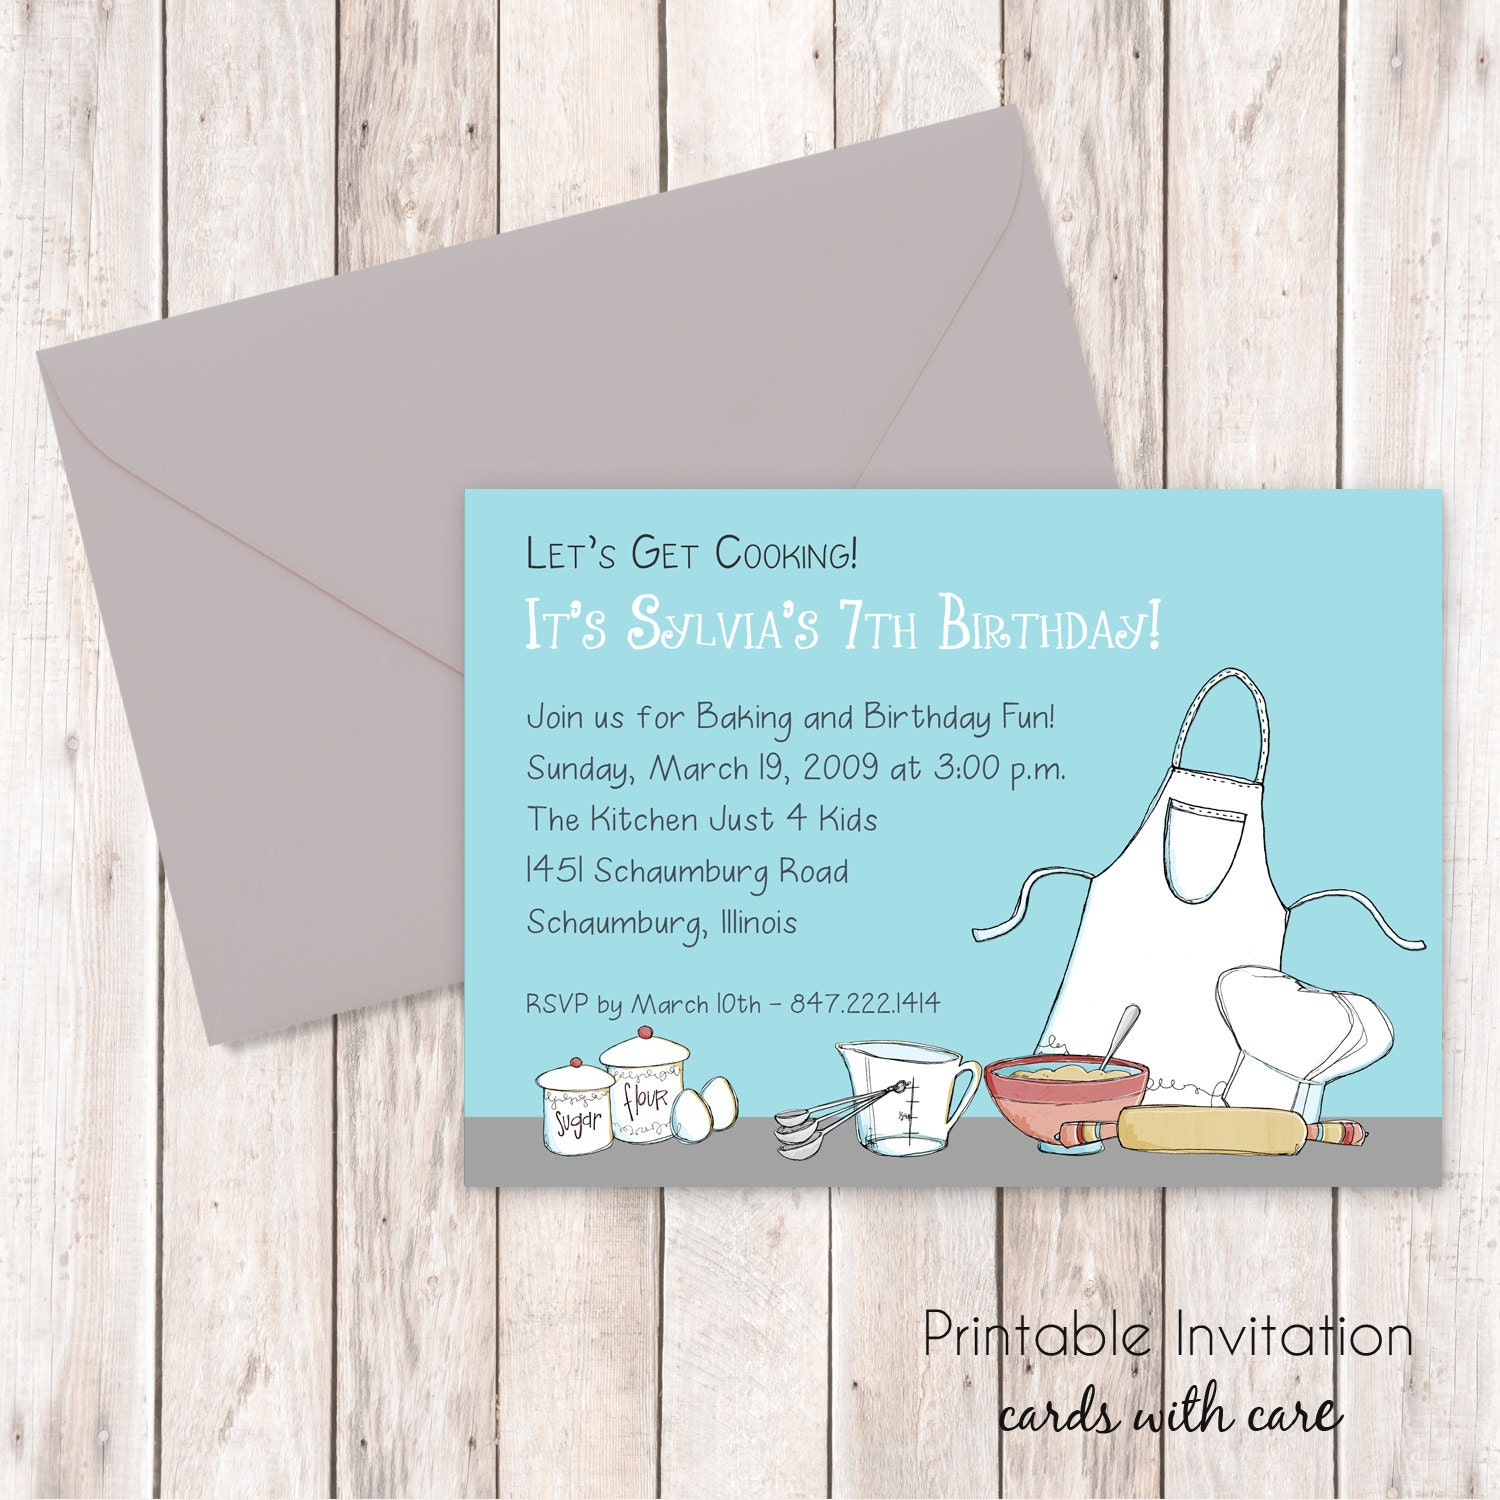 Cooking party invitation printable invitation custom zoom stopboris Image collections